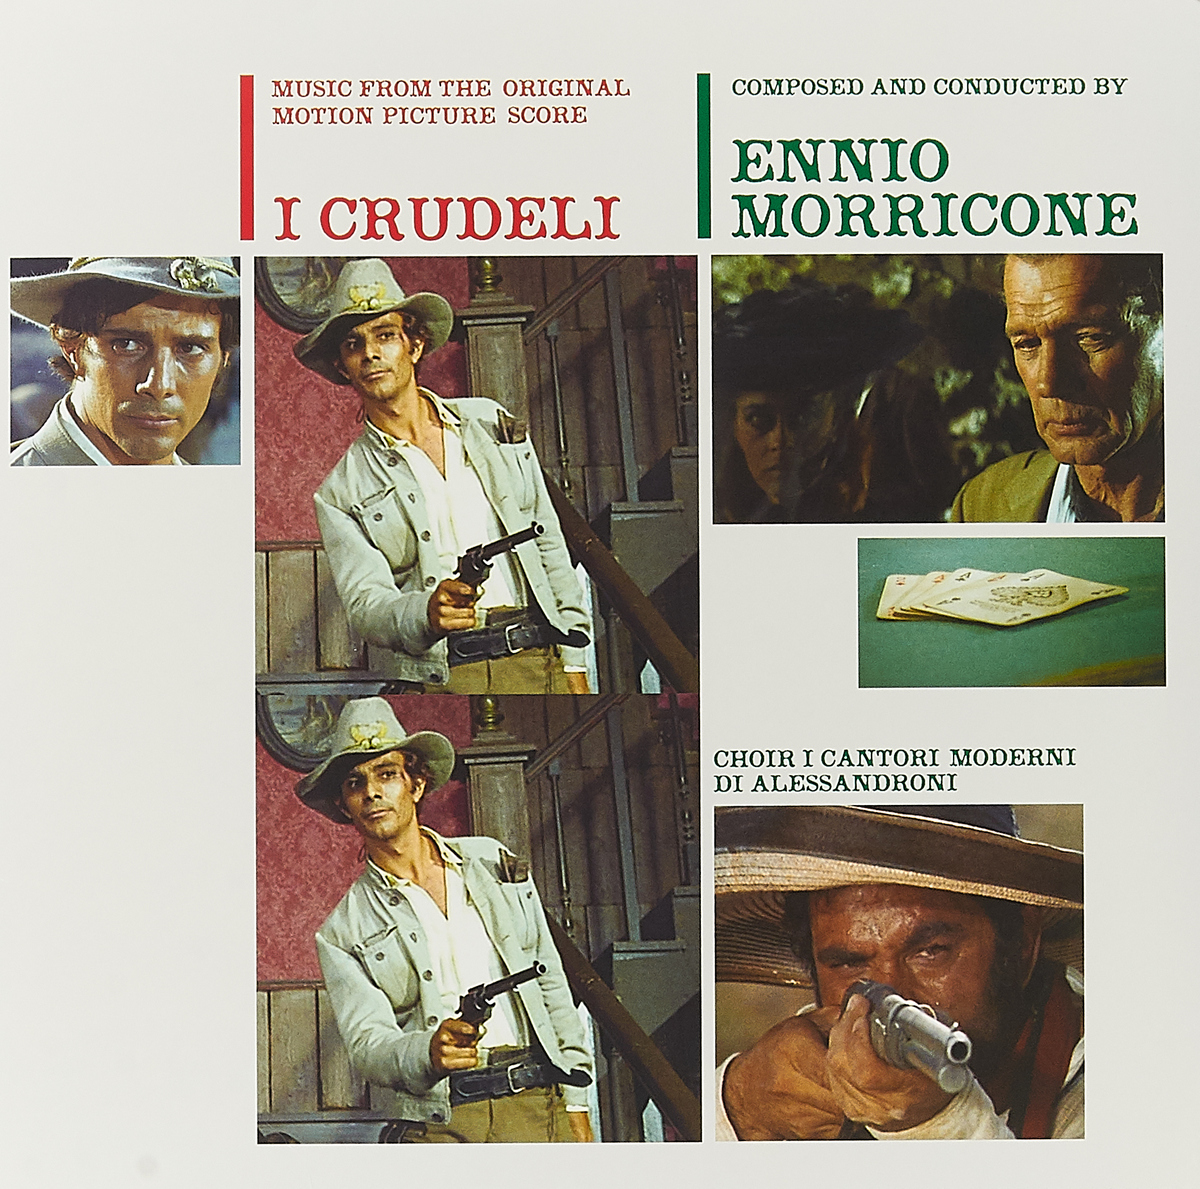 Эннио Морриконе Ennio Morricone. I Crudeli (Music From The Original Motion Picture Score) (LP) эннио морриконе ennio morricone la notte e il momento lp